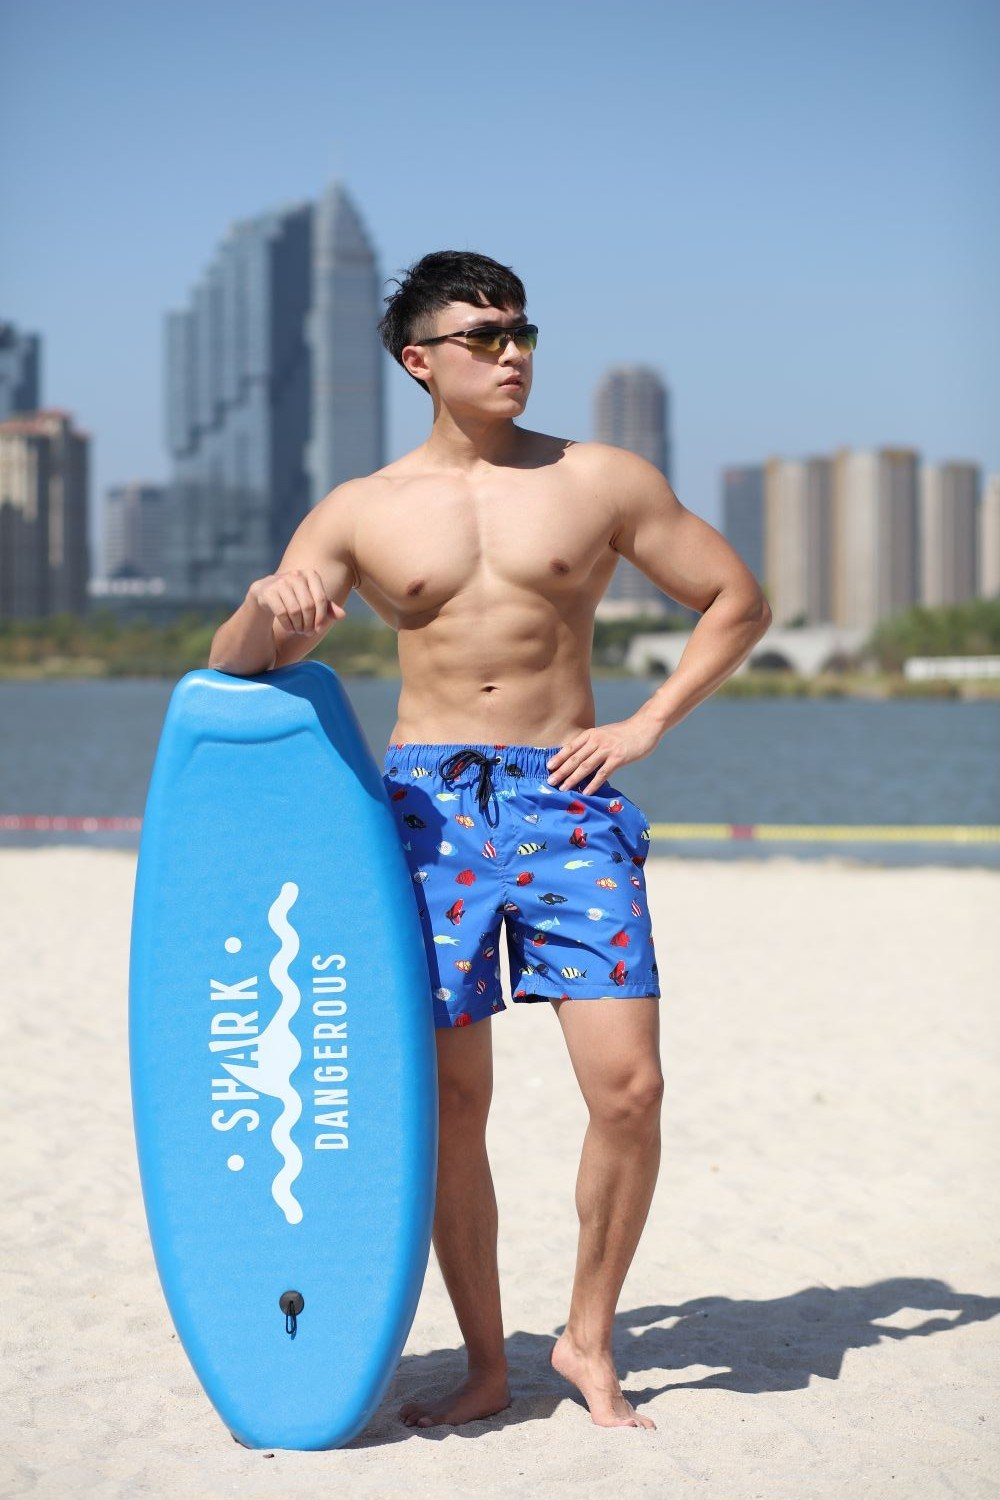 140GSM 100% Polyester Digital Print Quick Dry Full Elastic Waist Brief Lining Water Repellent Man's Swim Short